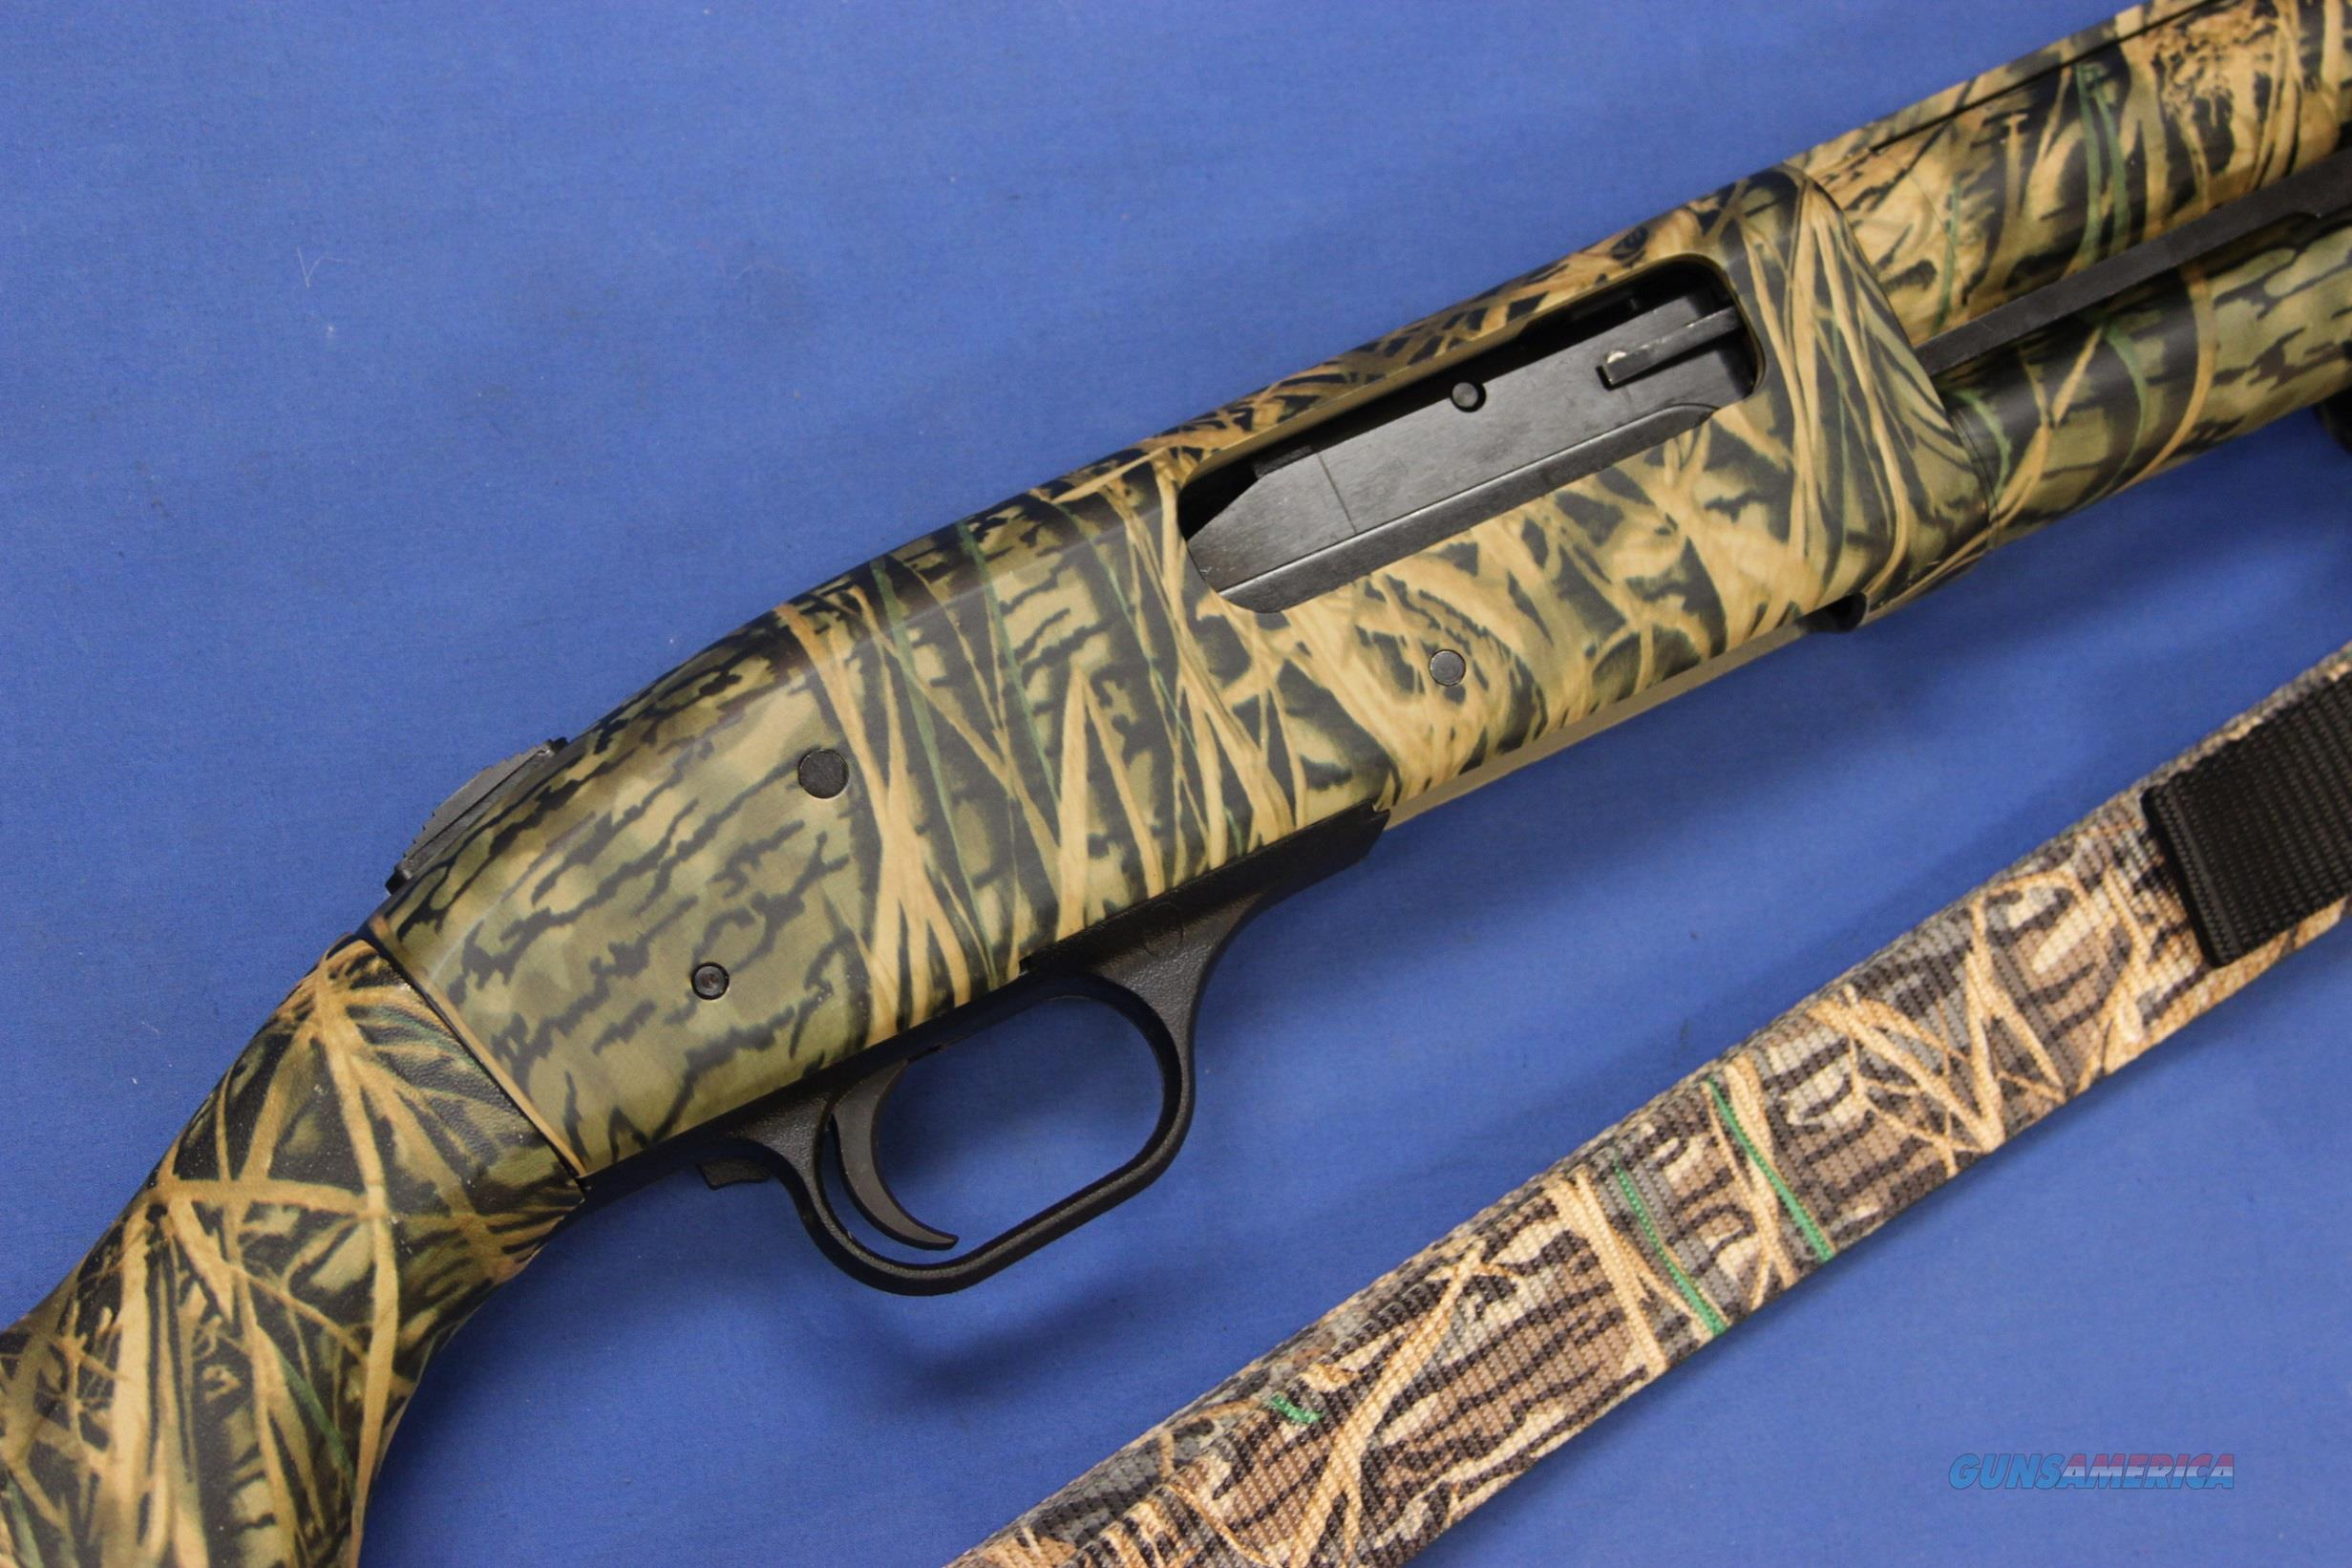 Mag Waterfowl Ulti Camo 835 Mossberg